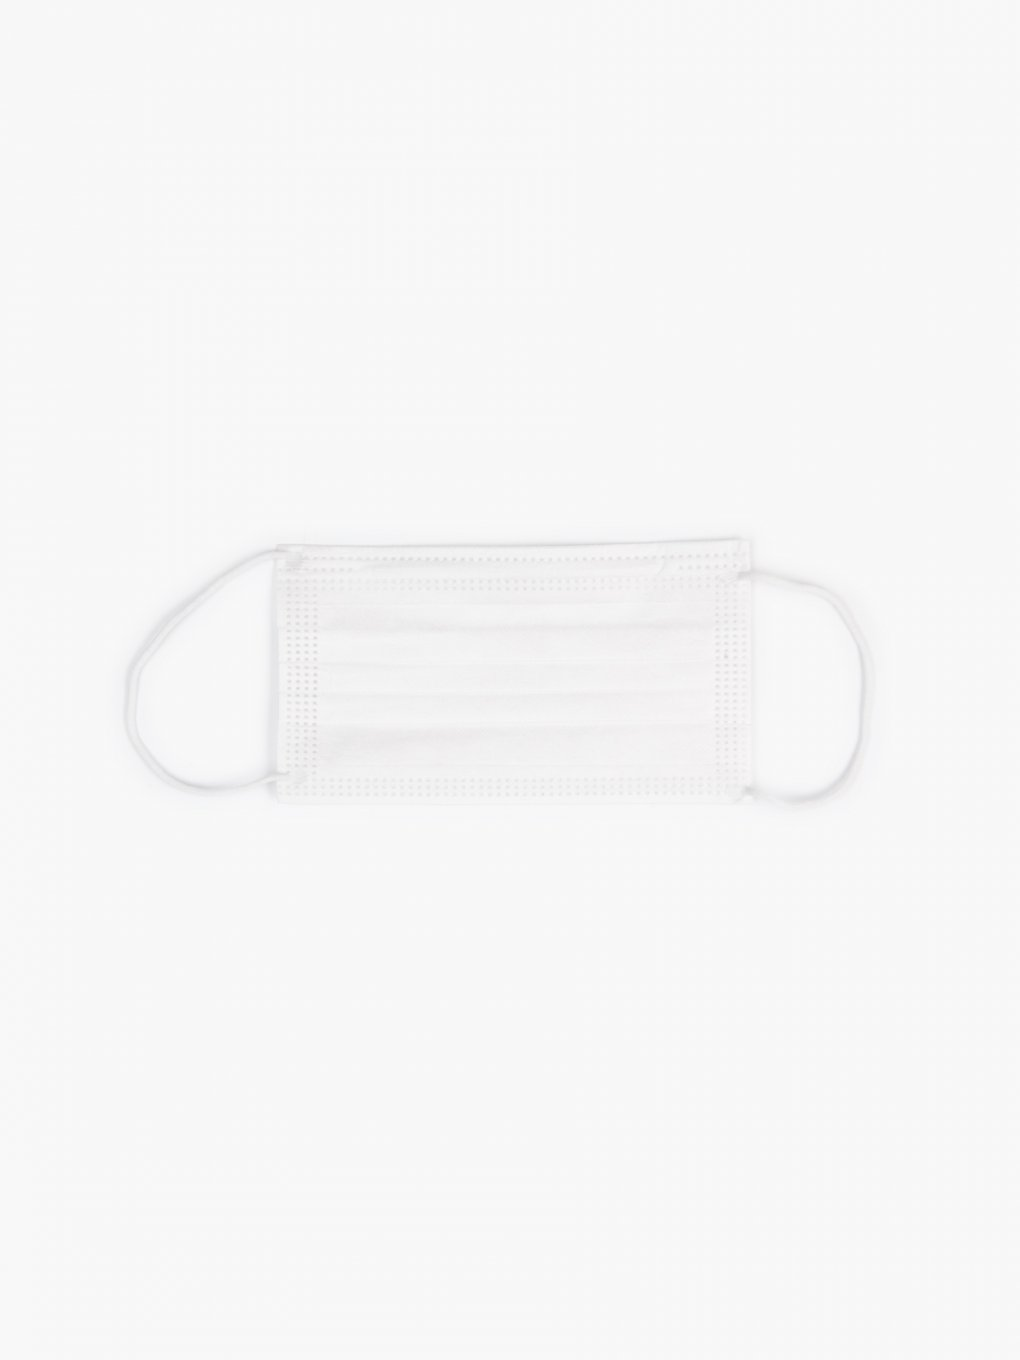 3-ply white disposable face mask (50 pcs)